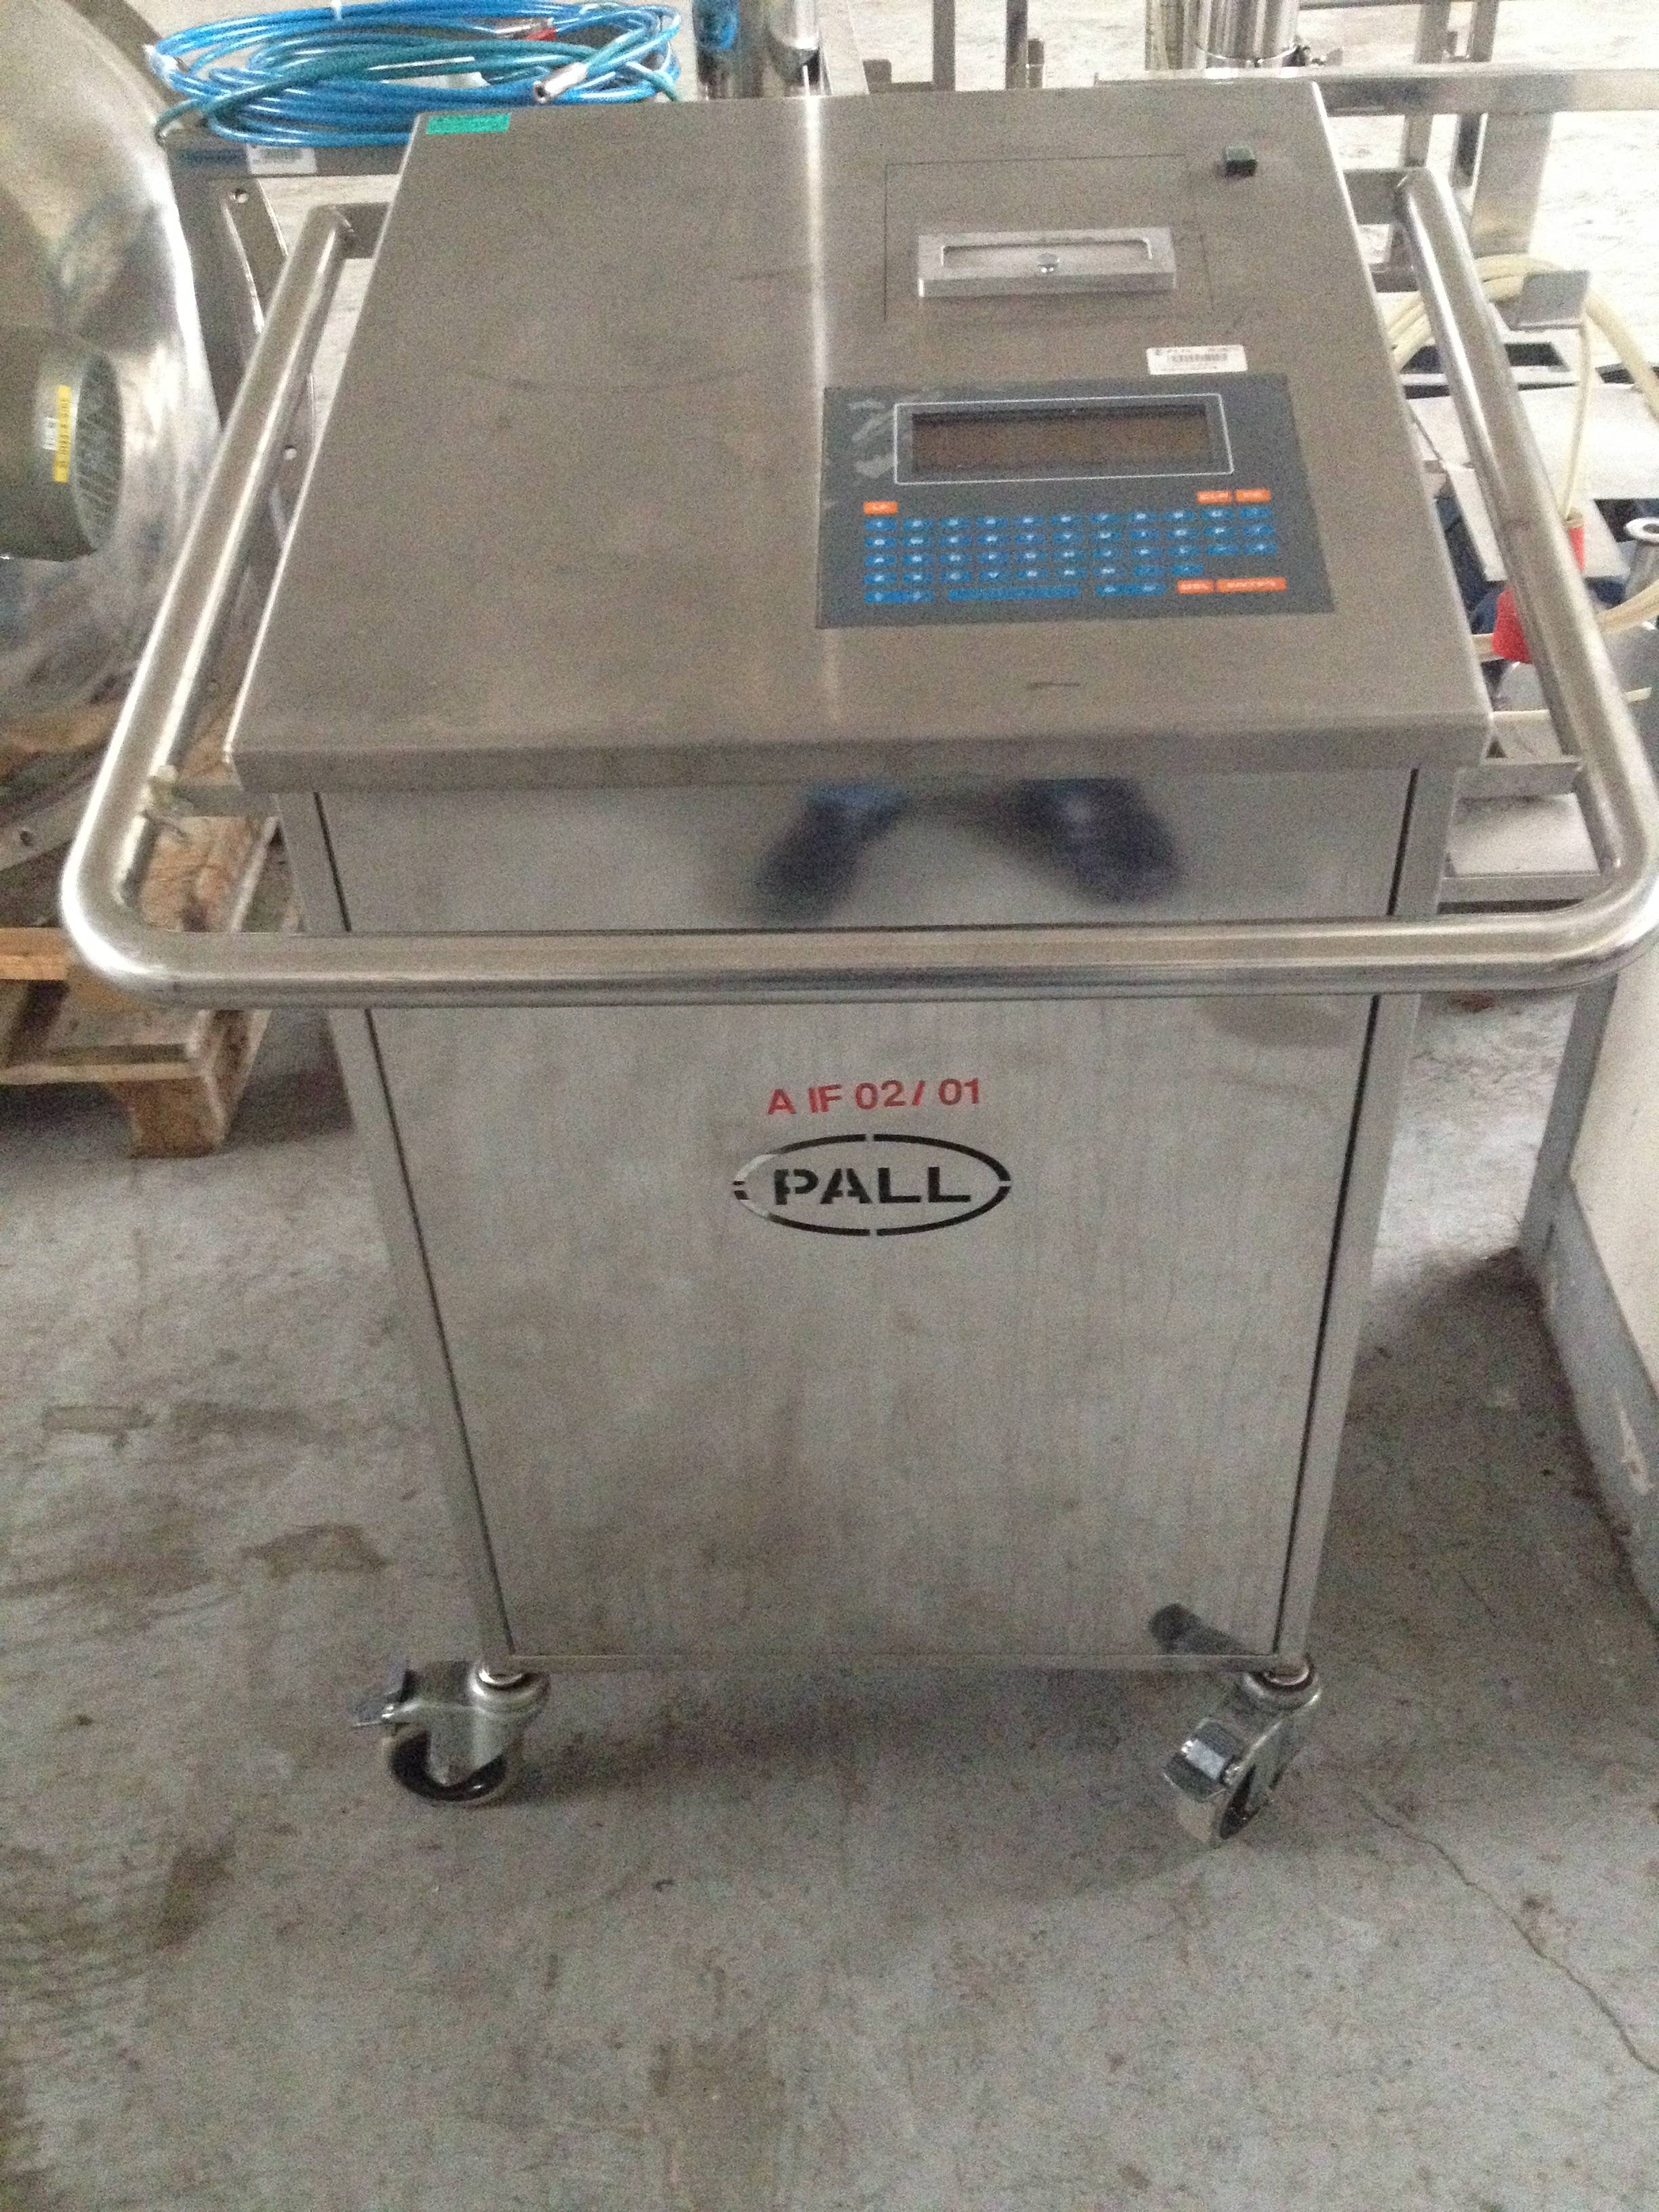 Pall AW-01- S Integrity Filter Tester